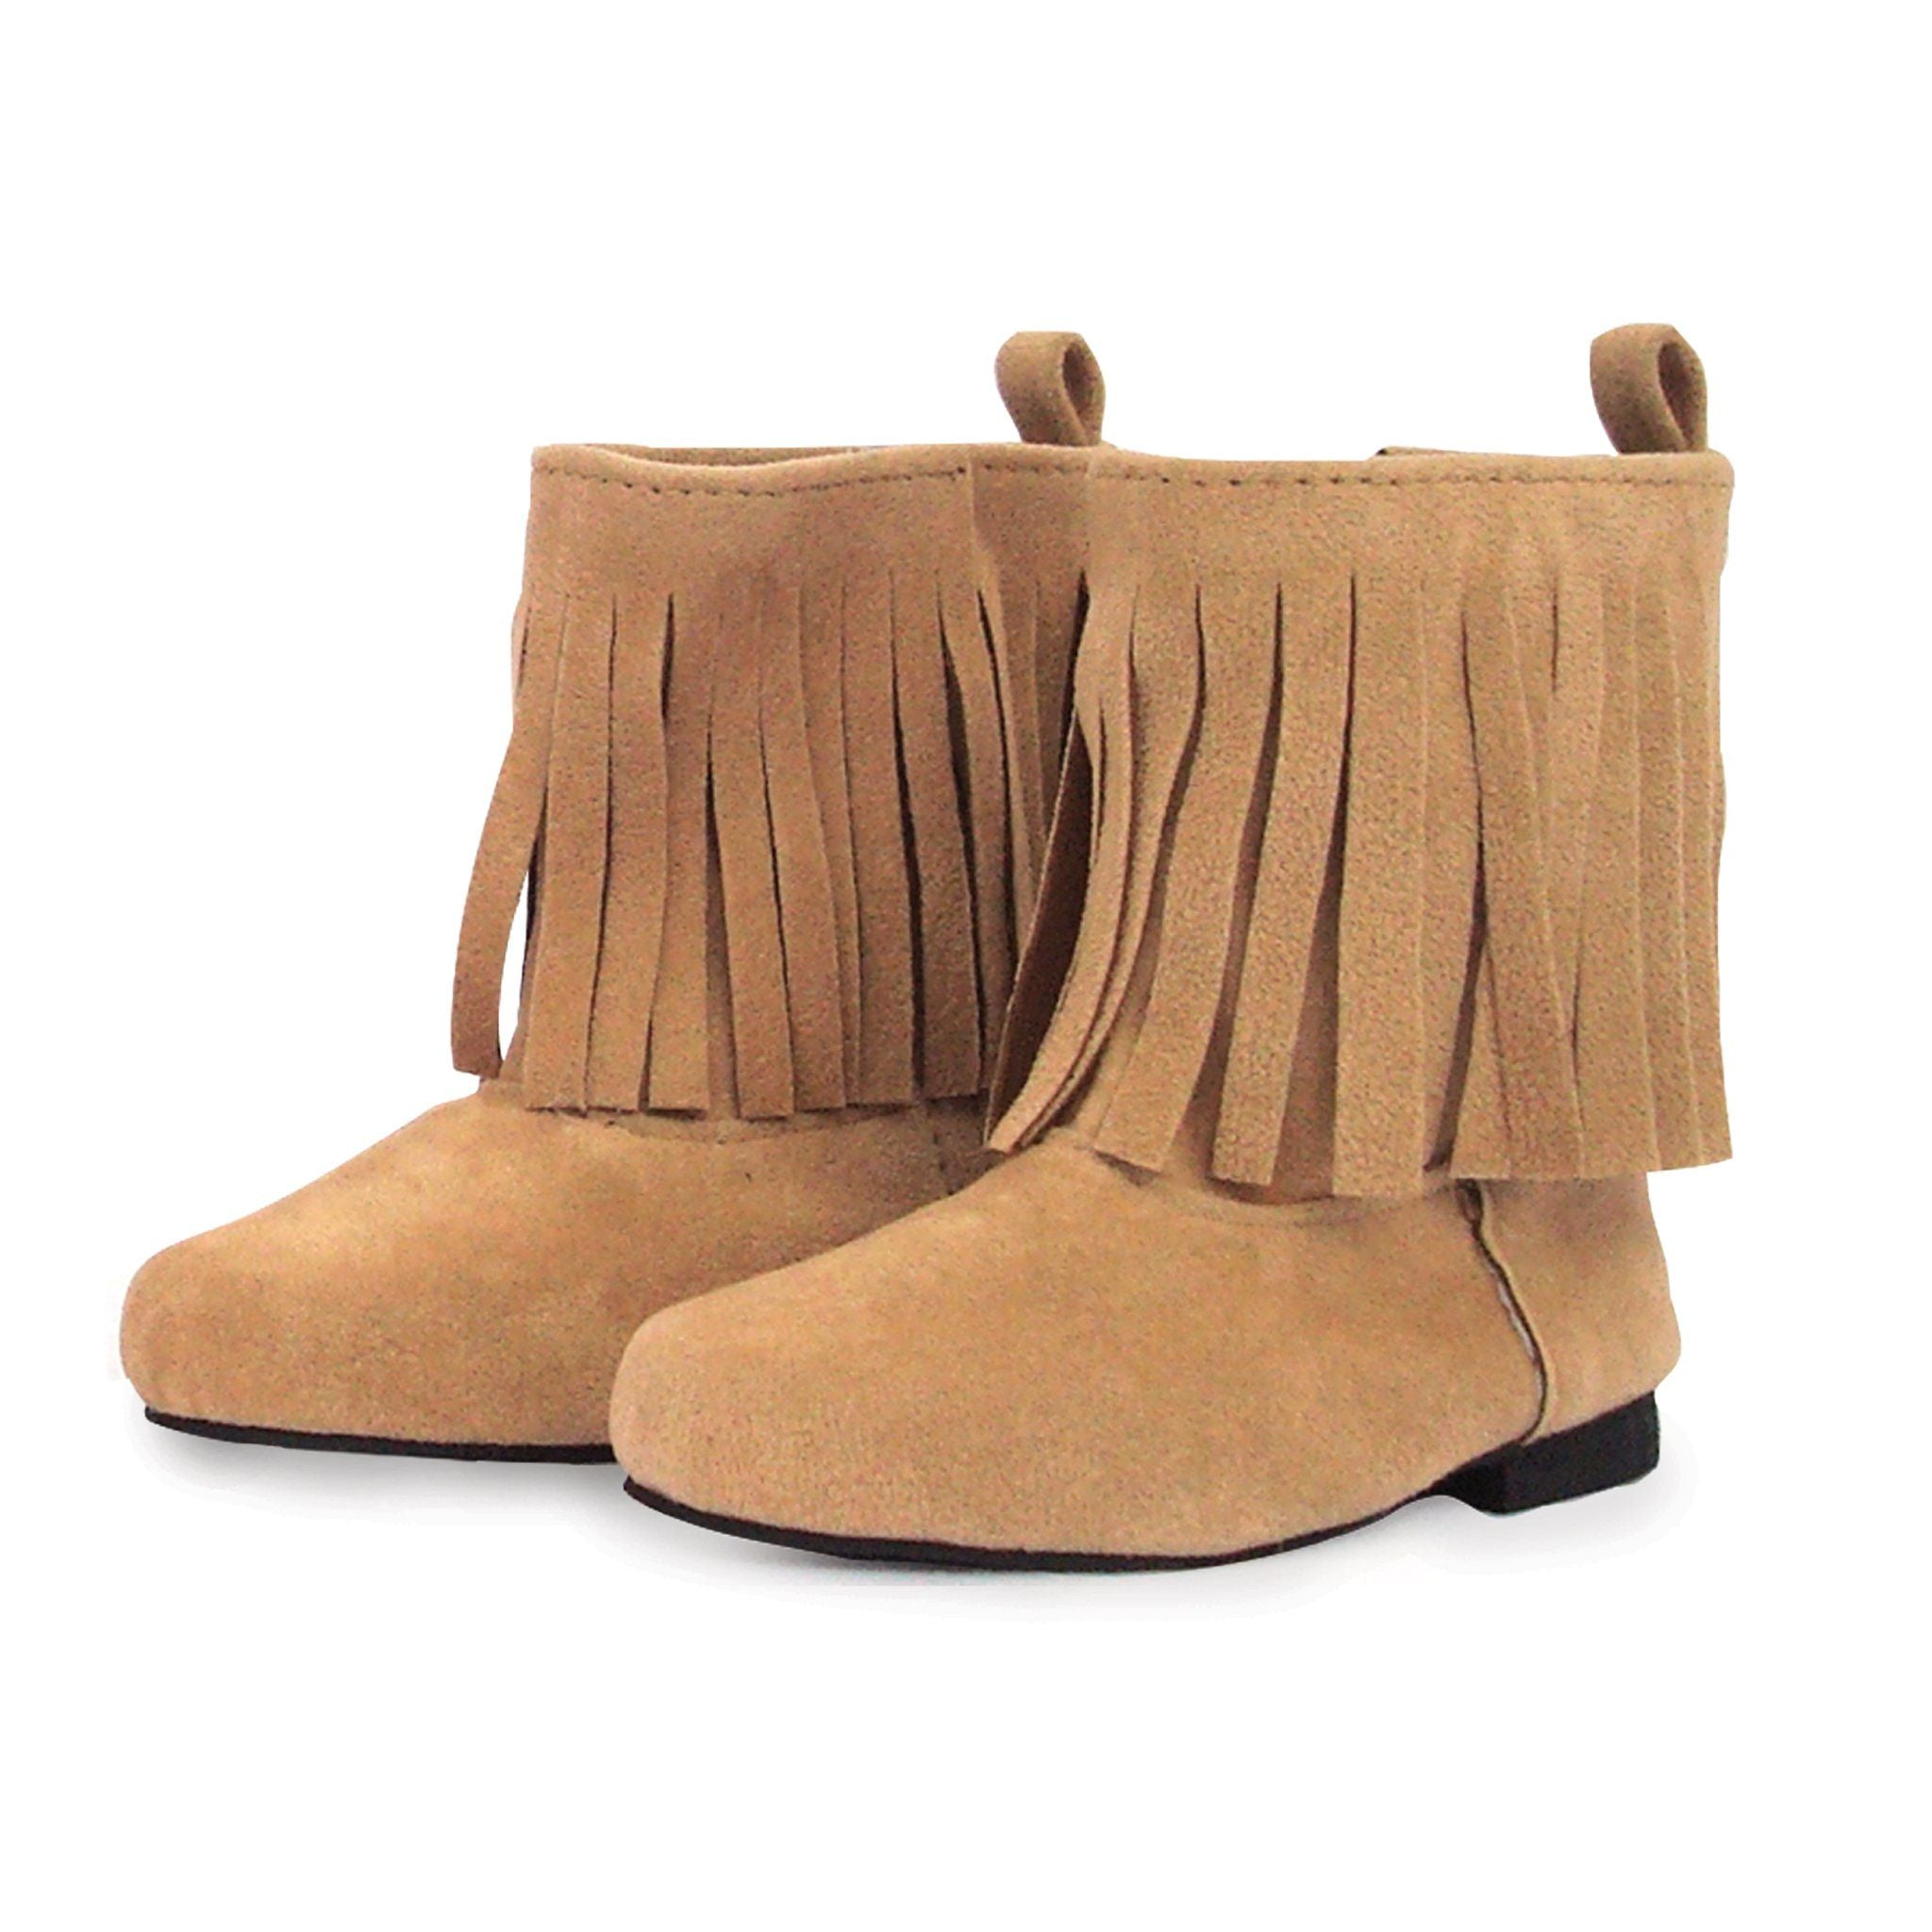 Western fringed boots fit all 18 inch dolls.